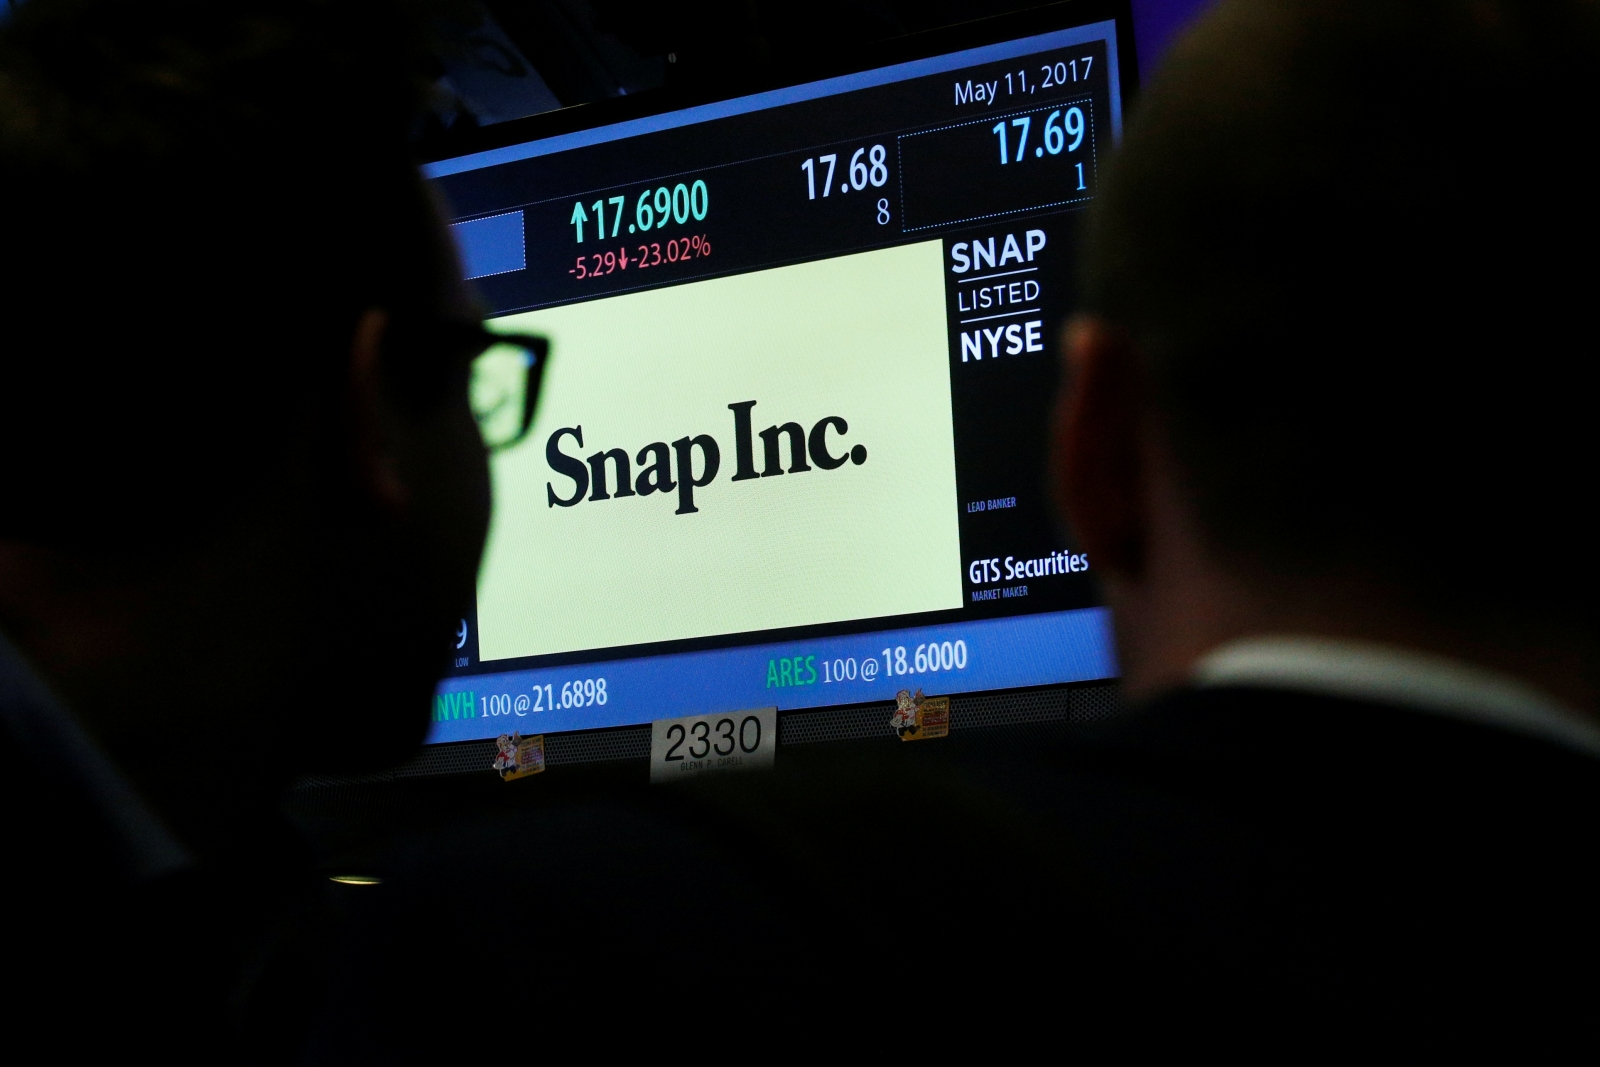 Snap Inc on the screen at NYSE